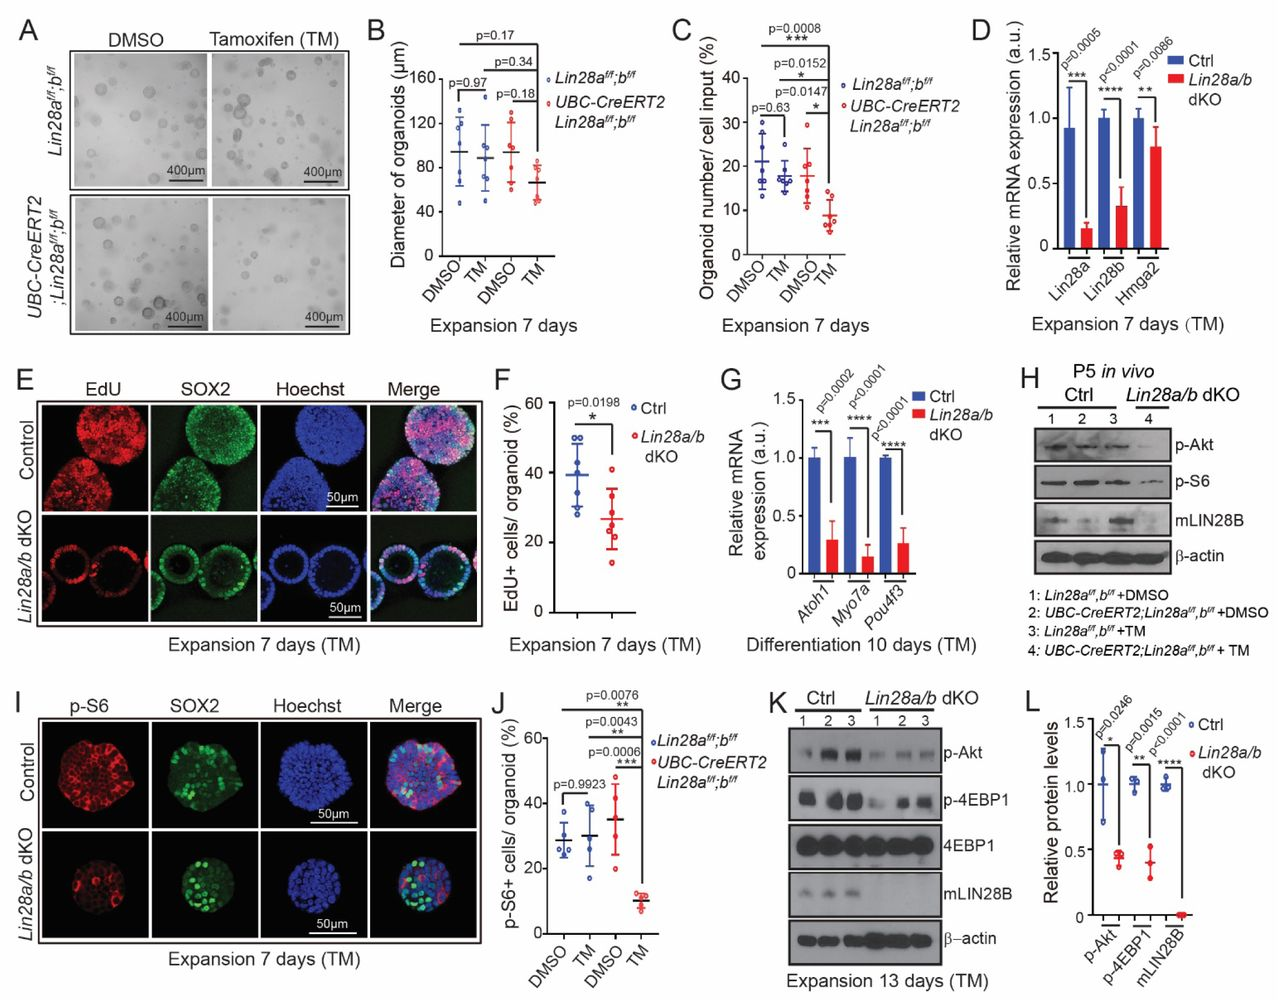 Loss of LIN28A/B attenuates mTOR signaling and limits supporting cell proliferation and hair cell formation in cochlear organoid culture. Cochlear organoid cultures were established from UBC-CreERT2; Lin28a f/f ; Lin28b f/f mice and Lin28a f/f ; Lin28b f/f littermates' stage P2. Cultures received 4-hydroxytamoxifen (TM) or vehicle control DMSO at plating. SOX2 (green) marks supporting cells/ pro-sensory cells, Hoechst (blue) staining marks cell nuclei. Bars in (D) and (G) represent mean± SD, otherwise individual data points and their mean ± SD were plotted. (A-G) Loss of Lin28a/b inhibits cell proliferation and hair cell production in organoid culture. ( A ) Representative BF images of control organoids and Lin28a/b dKO organoids at 7 days of expansion. ( B ) Diameter of control and Lin28a/b dKO organoids in ( A ) (n=7 animals per group, from 2 independent experiments). ( C ) Organoid forming efficiency in control and Lin28a/b dKO cultures (n=7 animals per group, from 2 independent experiments). ( D ) RT-qPCR analysis of Lin28a, Lin28b and Hmga2 mRNA expression in Lin28a/b dKO organoids (red bar) compared to control organoids (blue bar) at 7 days of expansion (n=5-6 animals per group, from 2 independent experiments). ( E ) Cell proliferation in control and Lin28a/b dKO organoids. A single EdU pulse was given at 7 days of expansion and EdU incorporation (red) was analyzed 1 hour later. ( F ) EdU incorporation in ( E ) (n=7 animals per group, from 2 independent experiments). ( G ) RT-qPCR analysis of Atoh1, Myo7a and Pou4f3 mRNA expression in Lin28a/b dKO organoids (red bar) compared to control organoids (blue bar) at 10 days of differentiation (n=4 animals per group, from 2 independent experiments). (H) Immunoblots for LIN28B, p-Akt, p-S6 and <t>β-actin</t> using protein lysates of acutely isolated control and Lin28a/b dKO cochlear epithelia, stage P5. ( I - L ) Loss of Lin28a/b attenuates mTOR signaling in cochlear organoids. ( I ) Immunostaining for p-S6 protein (r